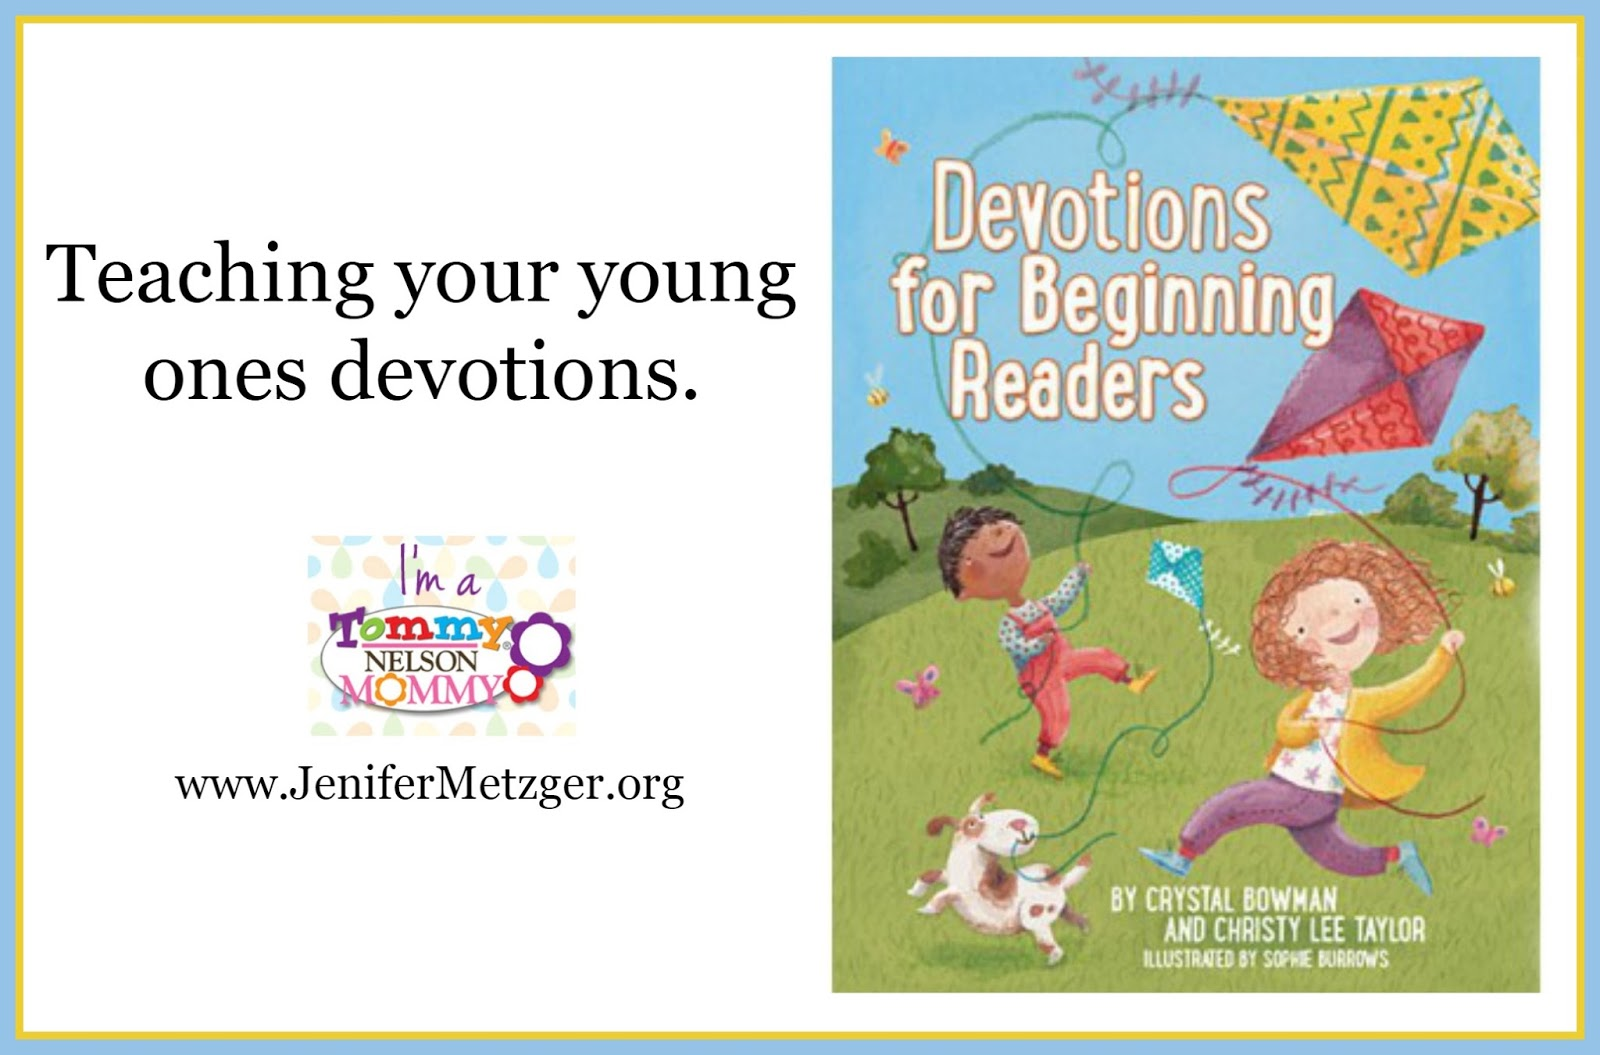 Teaching your young ones devotions. #children #parenting #Bible #devotions